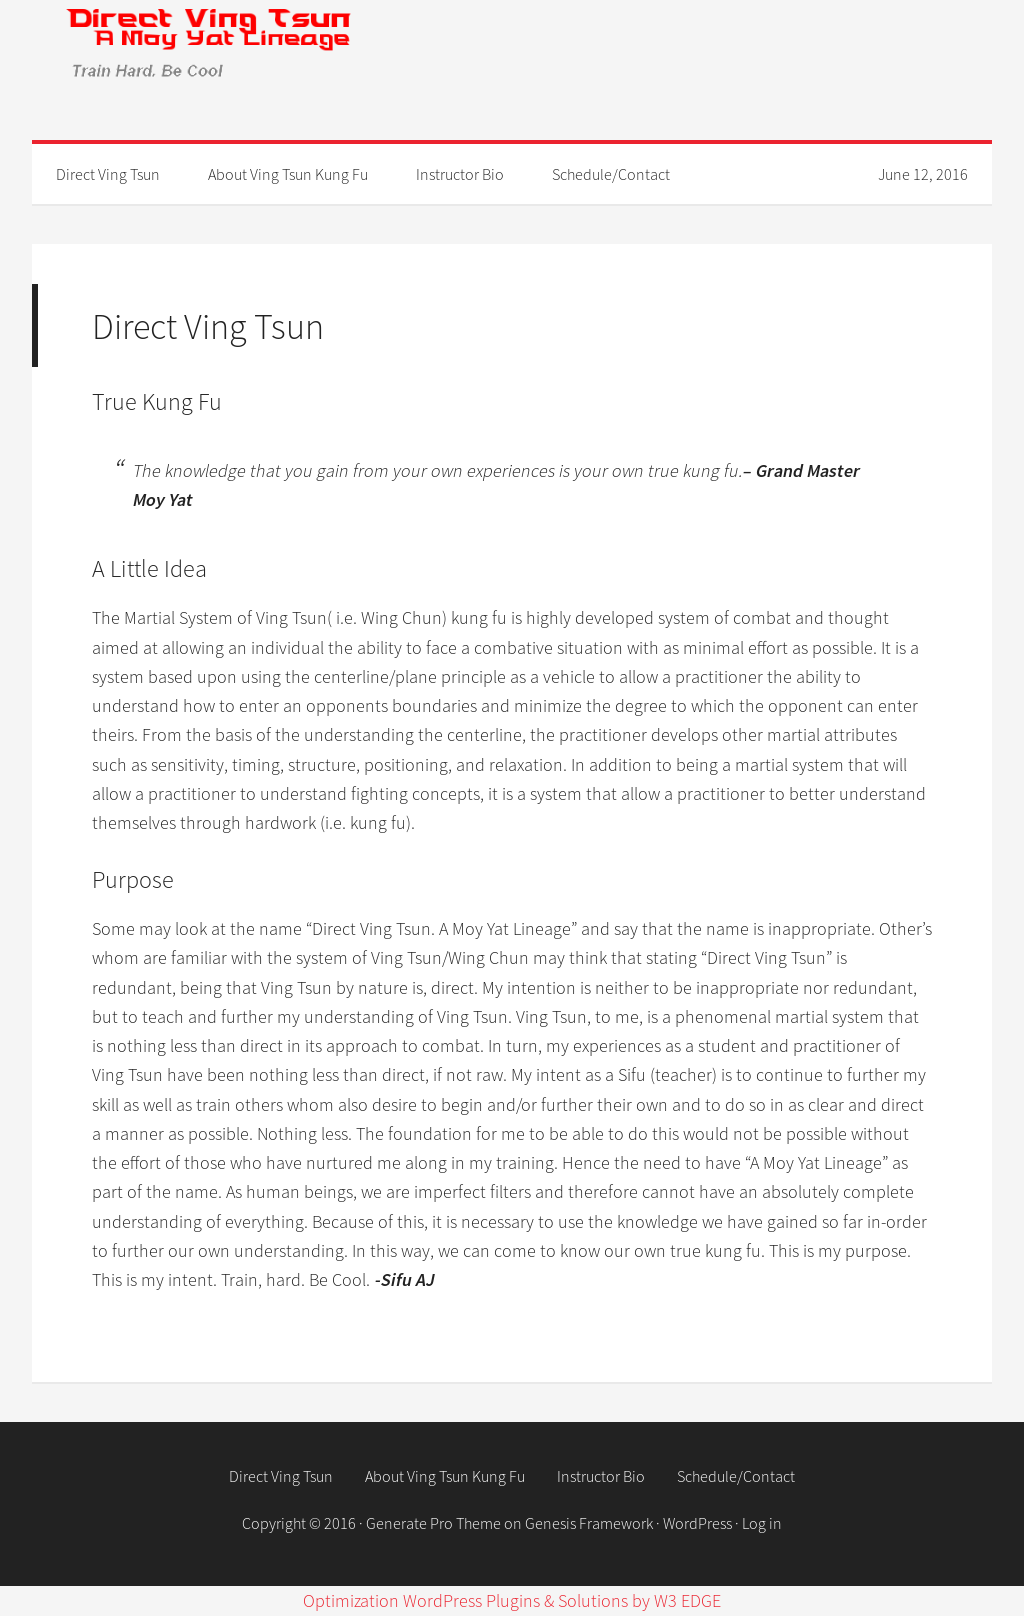 Direct Ving Tsun. A Moy Yat Lineage Competitors, Revenue and Employees - Owler Company Profile